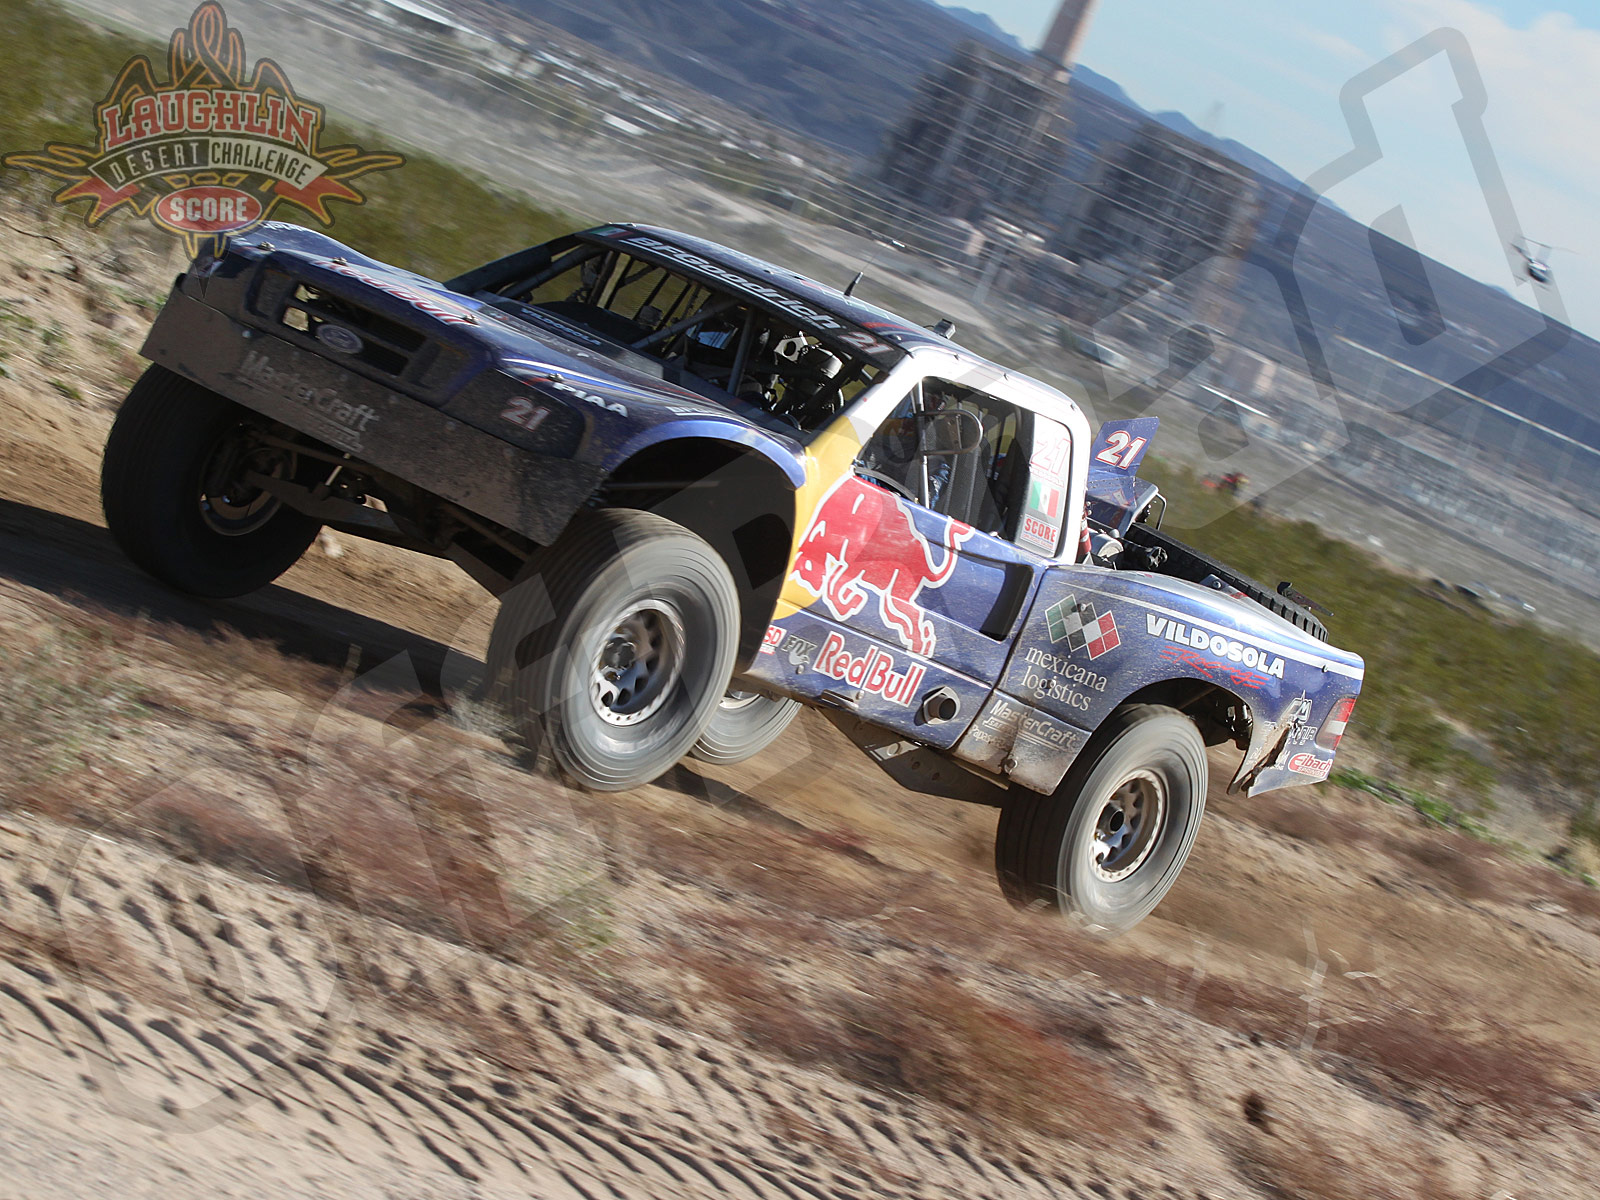 030311or 6841+2011 score laughlin desert challenge+trophy trucks sunday